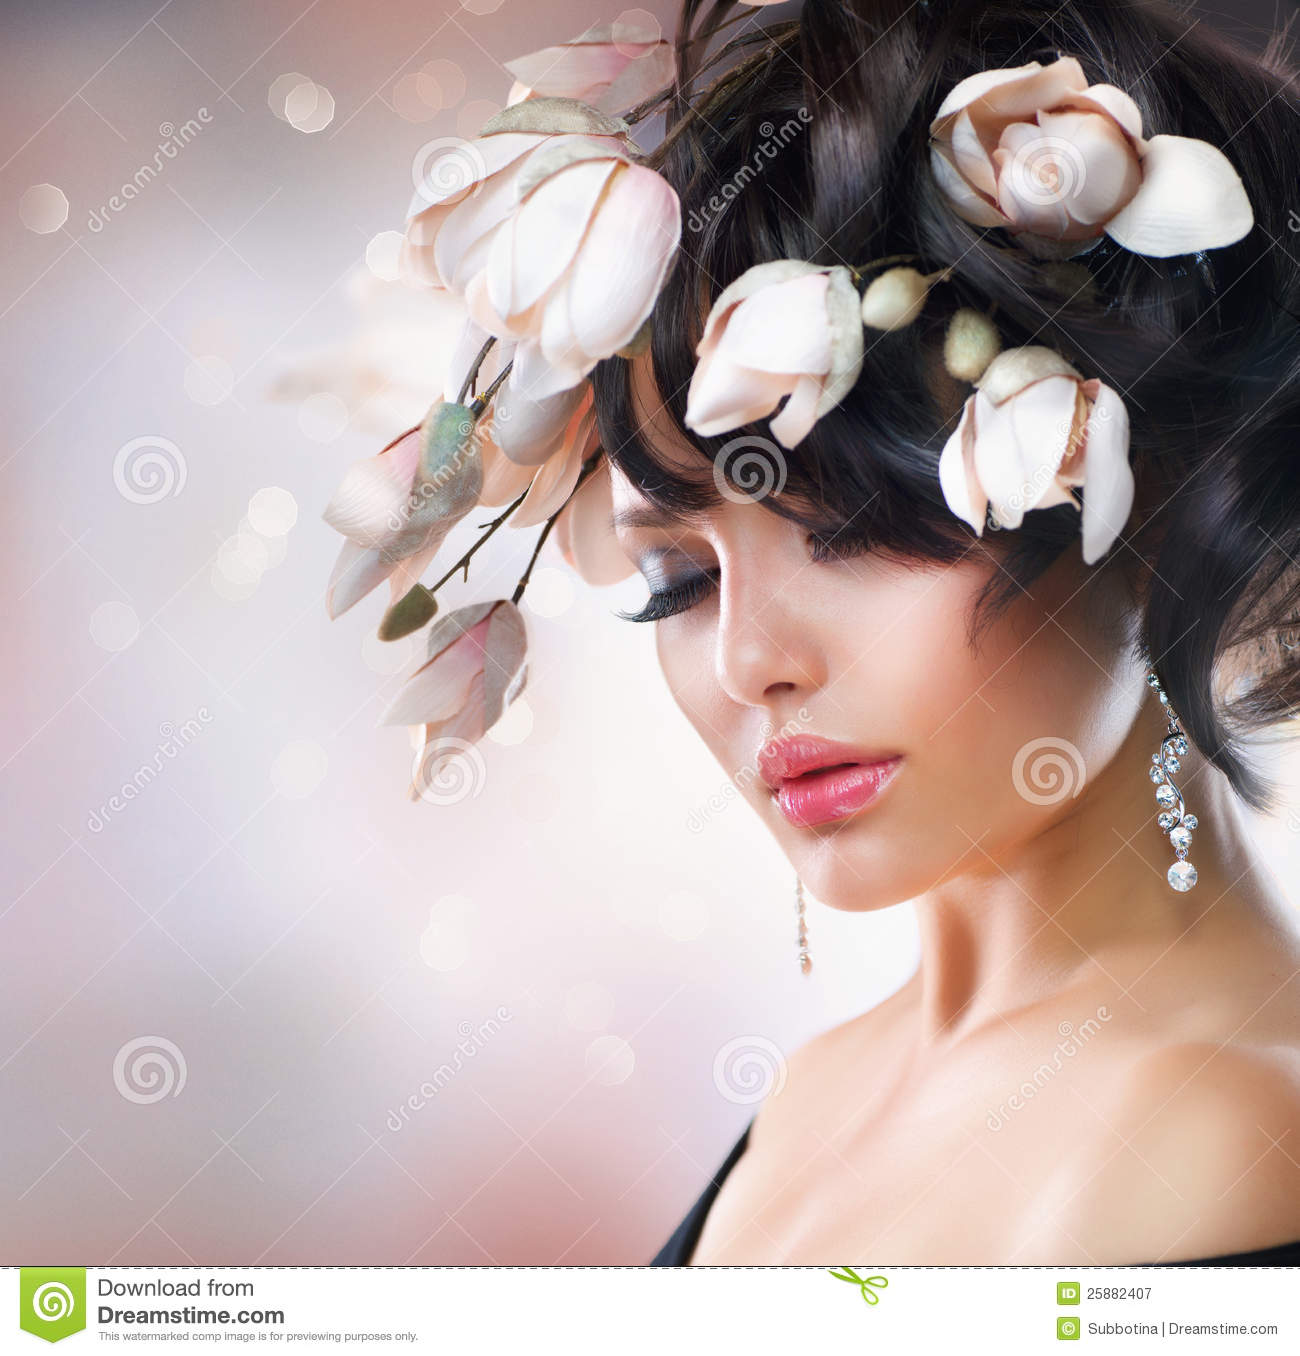 Girl with Magnolia Flowers